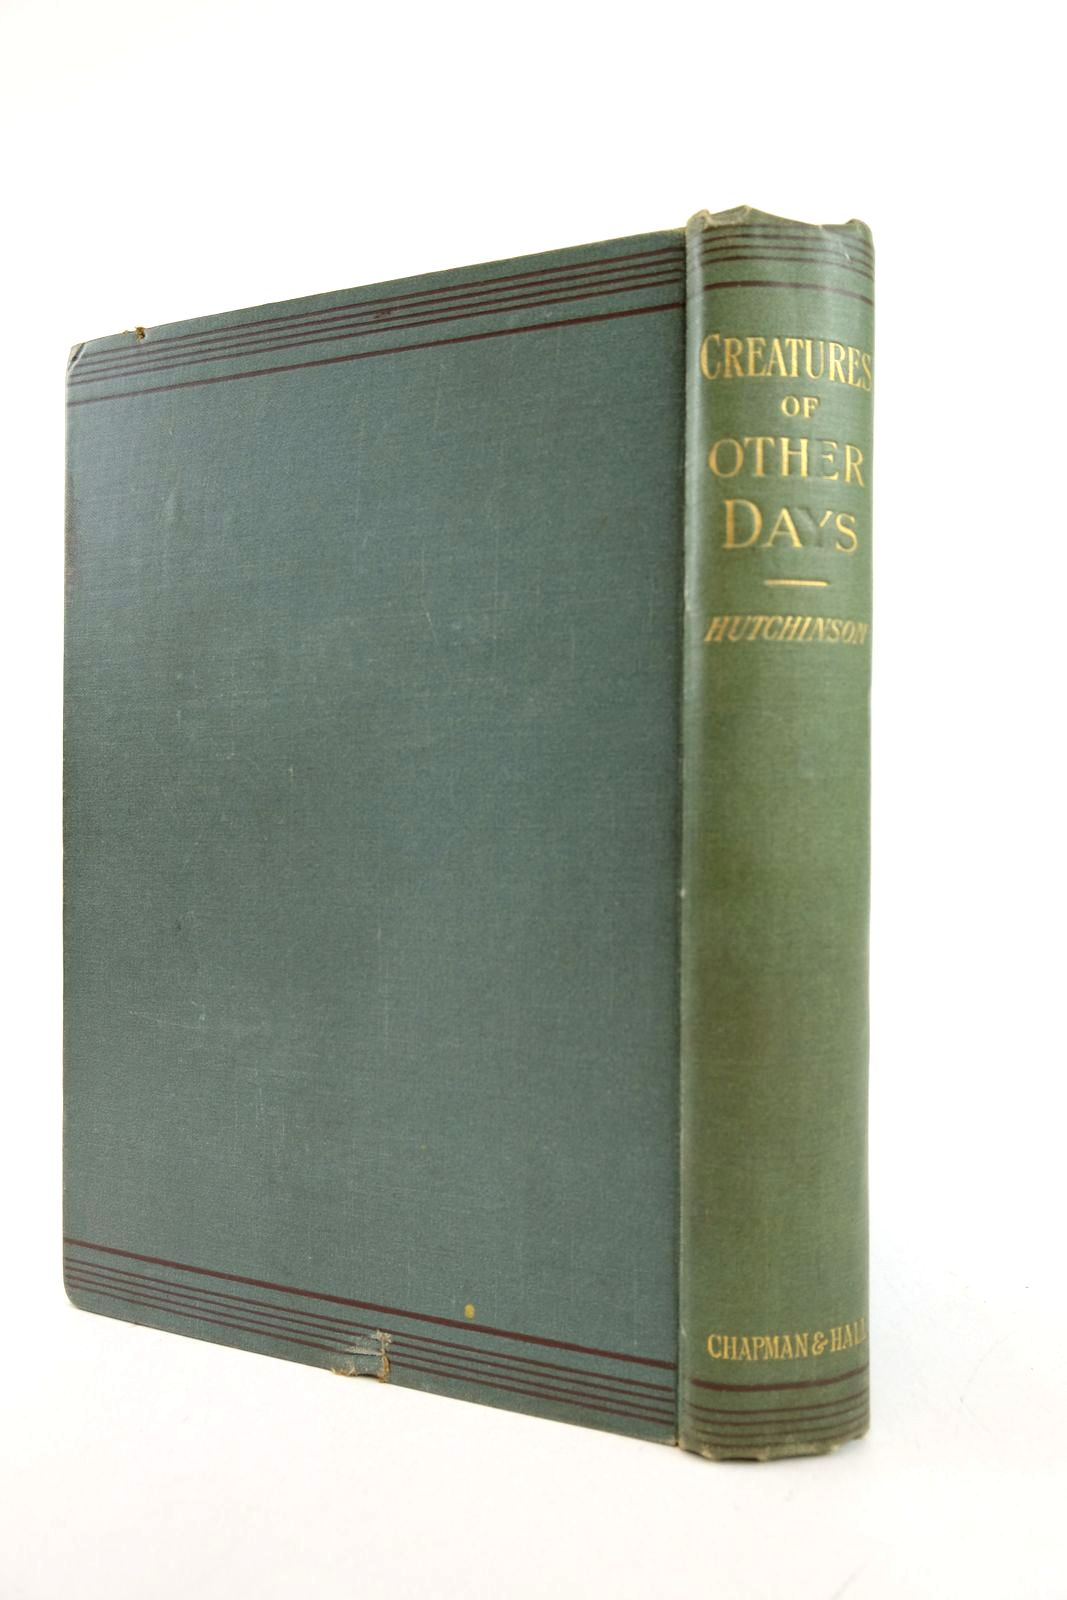 Photo of CREATURES OF OTHER DAYS written by Hutchinson, H.N. illustrated by Smit, J. et al., published by Chapman & Hall Ltd (STOCK CODE: 2133148)  for sale by Stella & Rose's Books